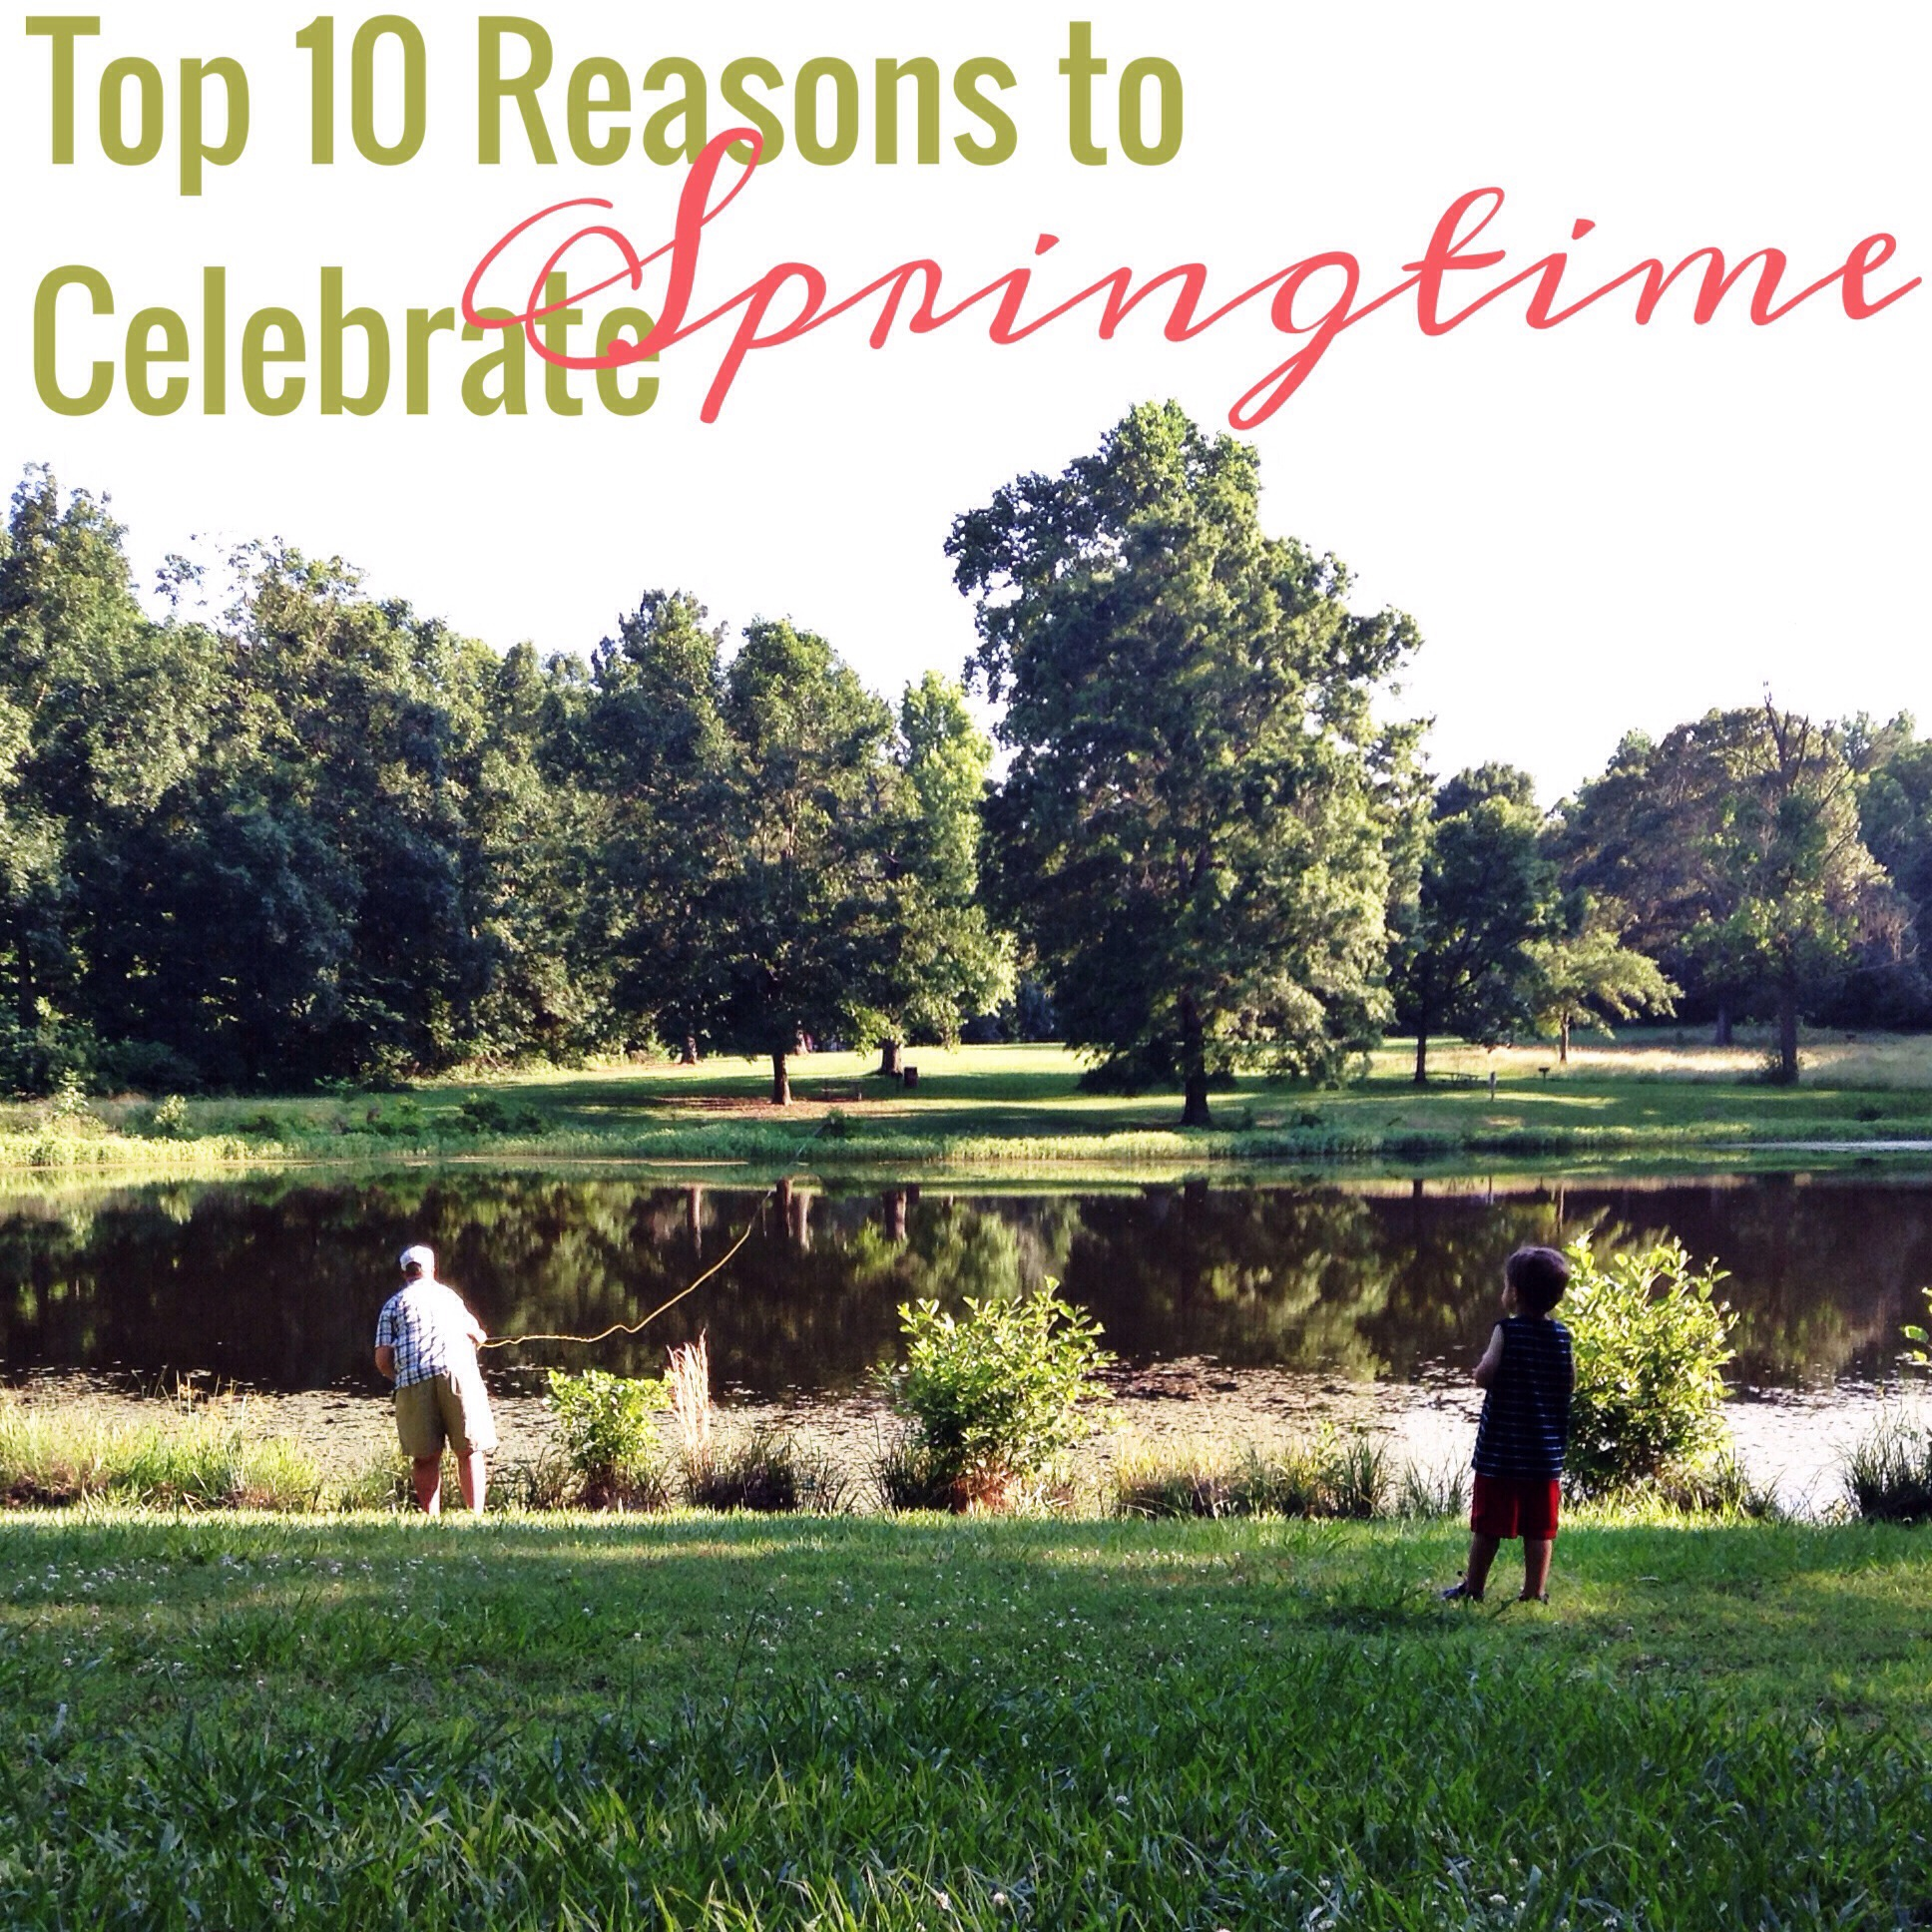 Top 10 Reasons to Celebrate Springtime